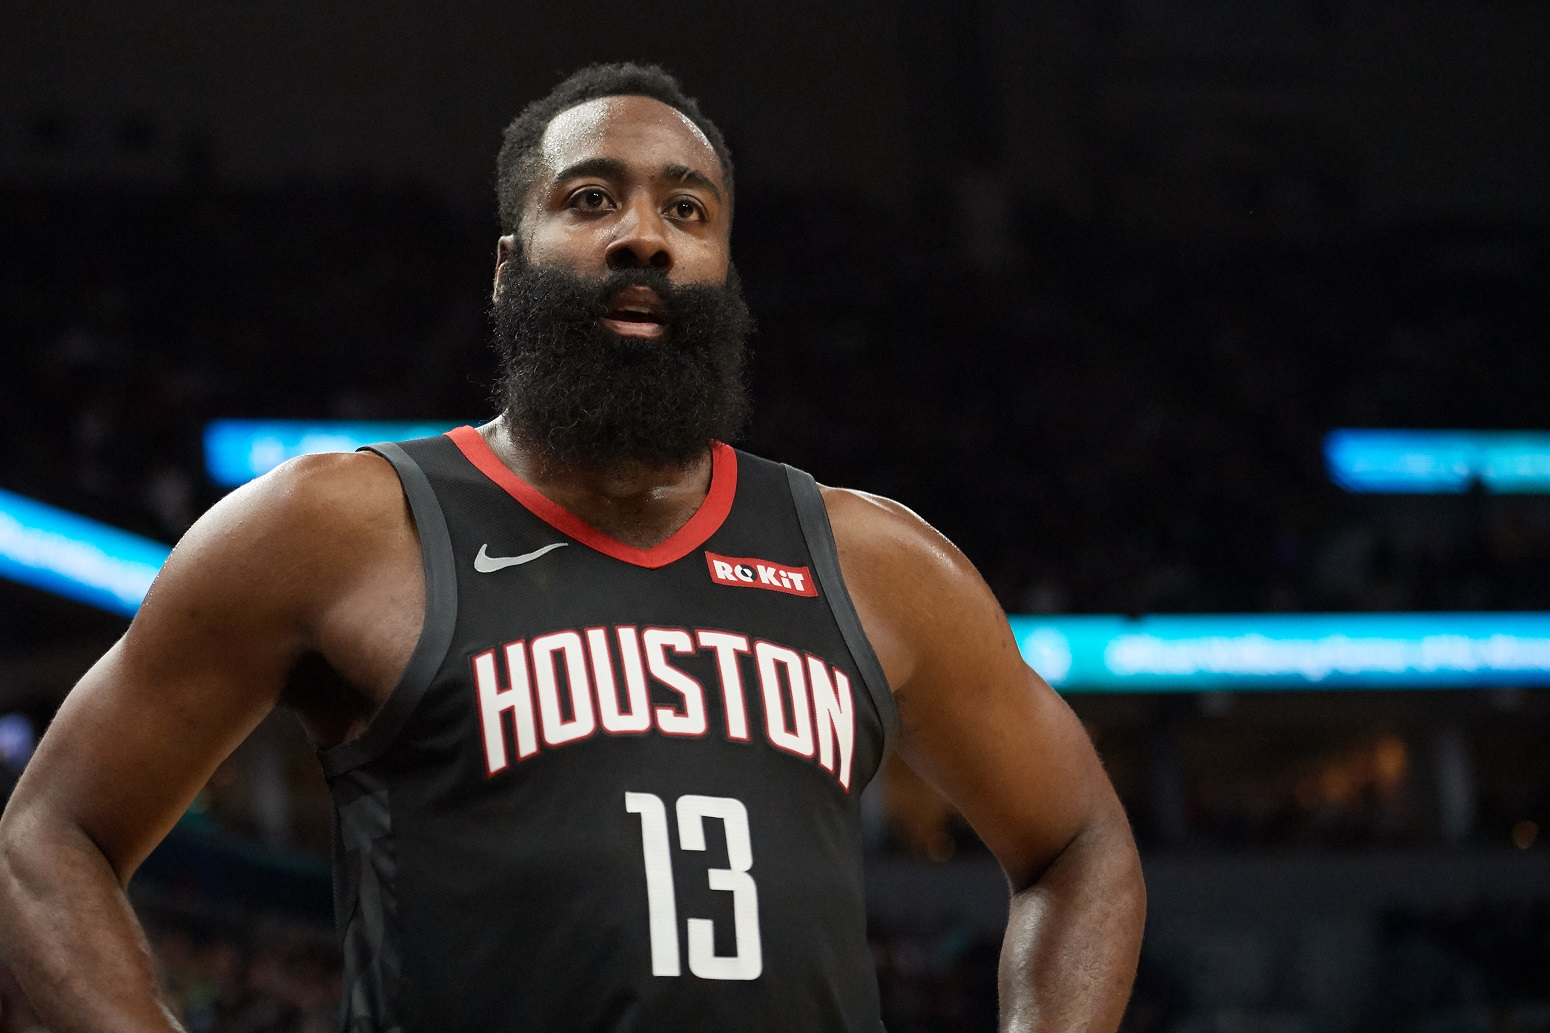 James Harden silently forcing Houston Rockets hand